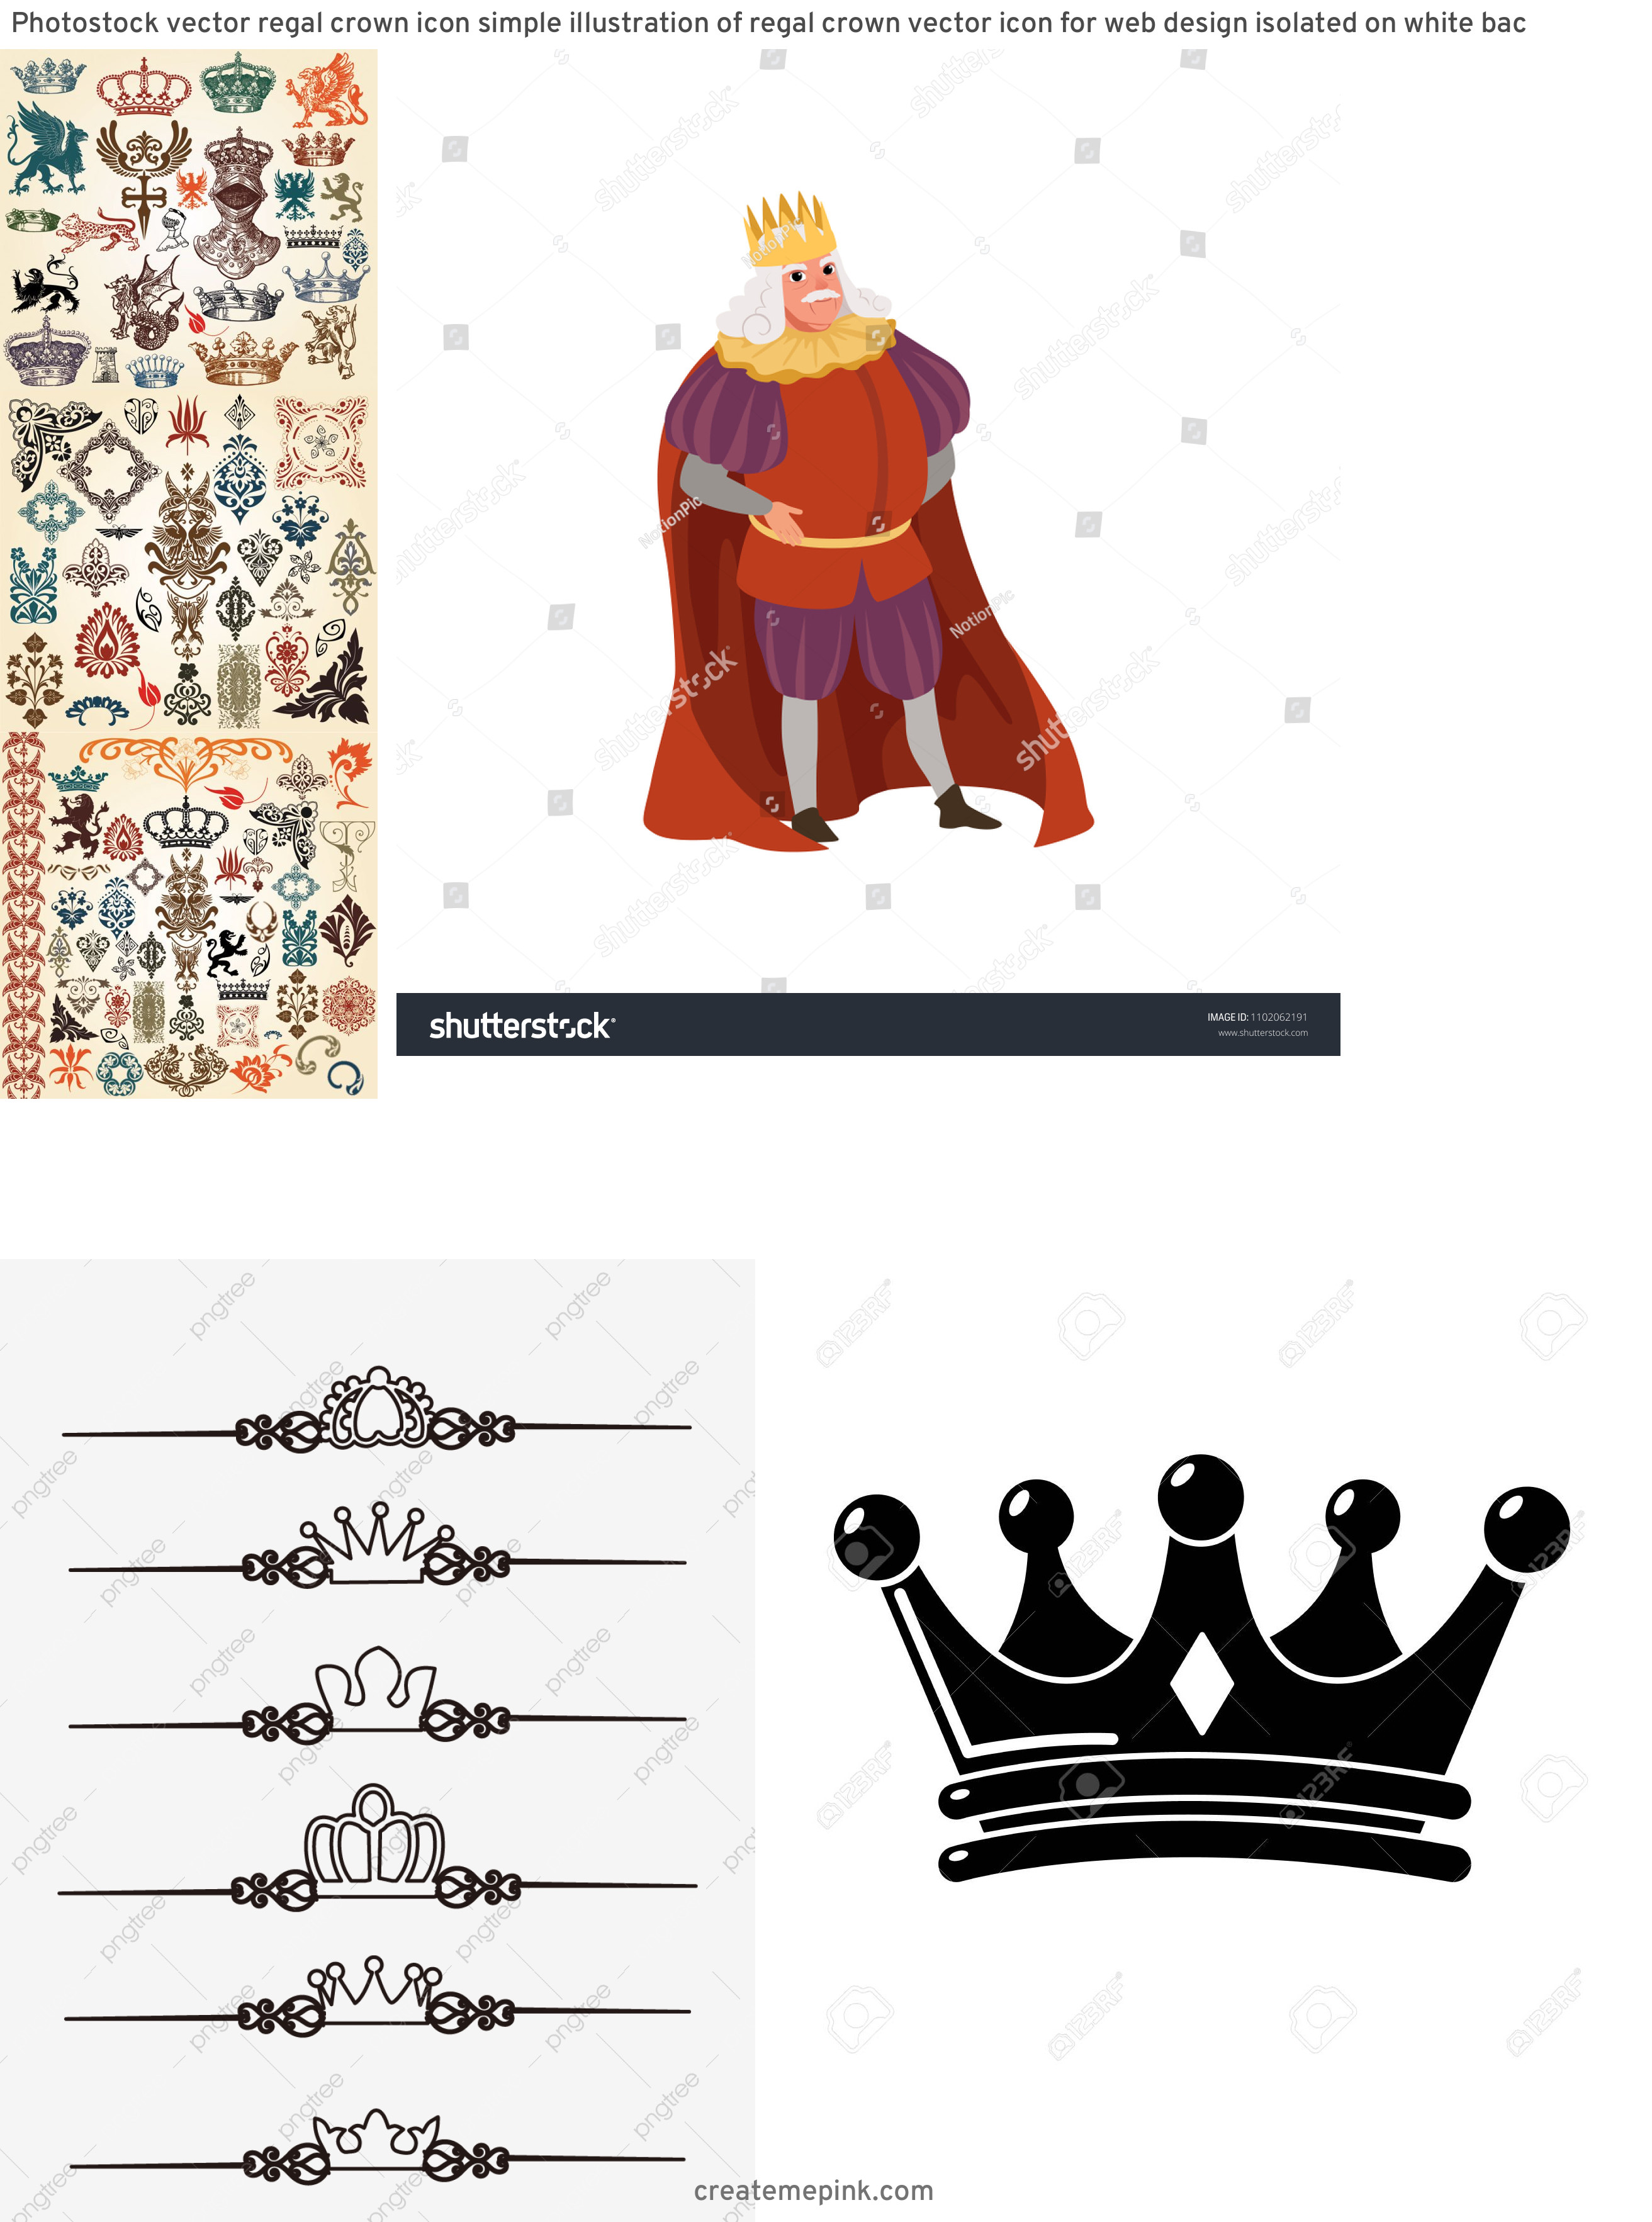 European Crown Vector: Photostock Vector Regal Crown Icon Simple Illustration Of Regal Crown Vector Icon For Web Design Isolated On White Bac